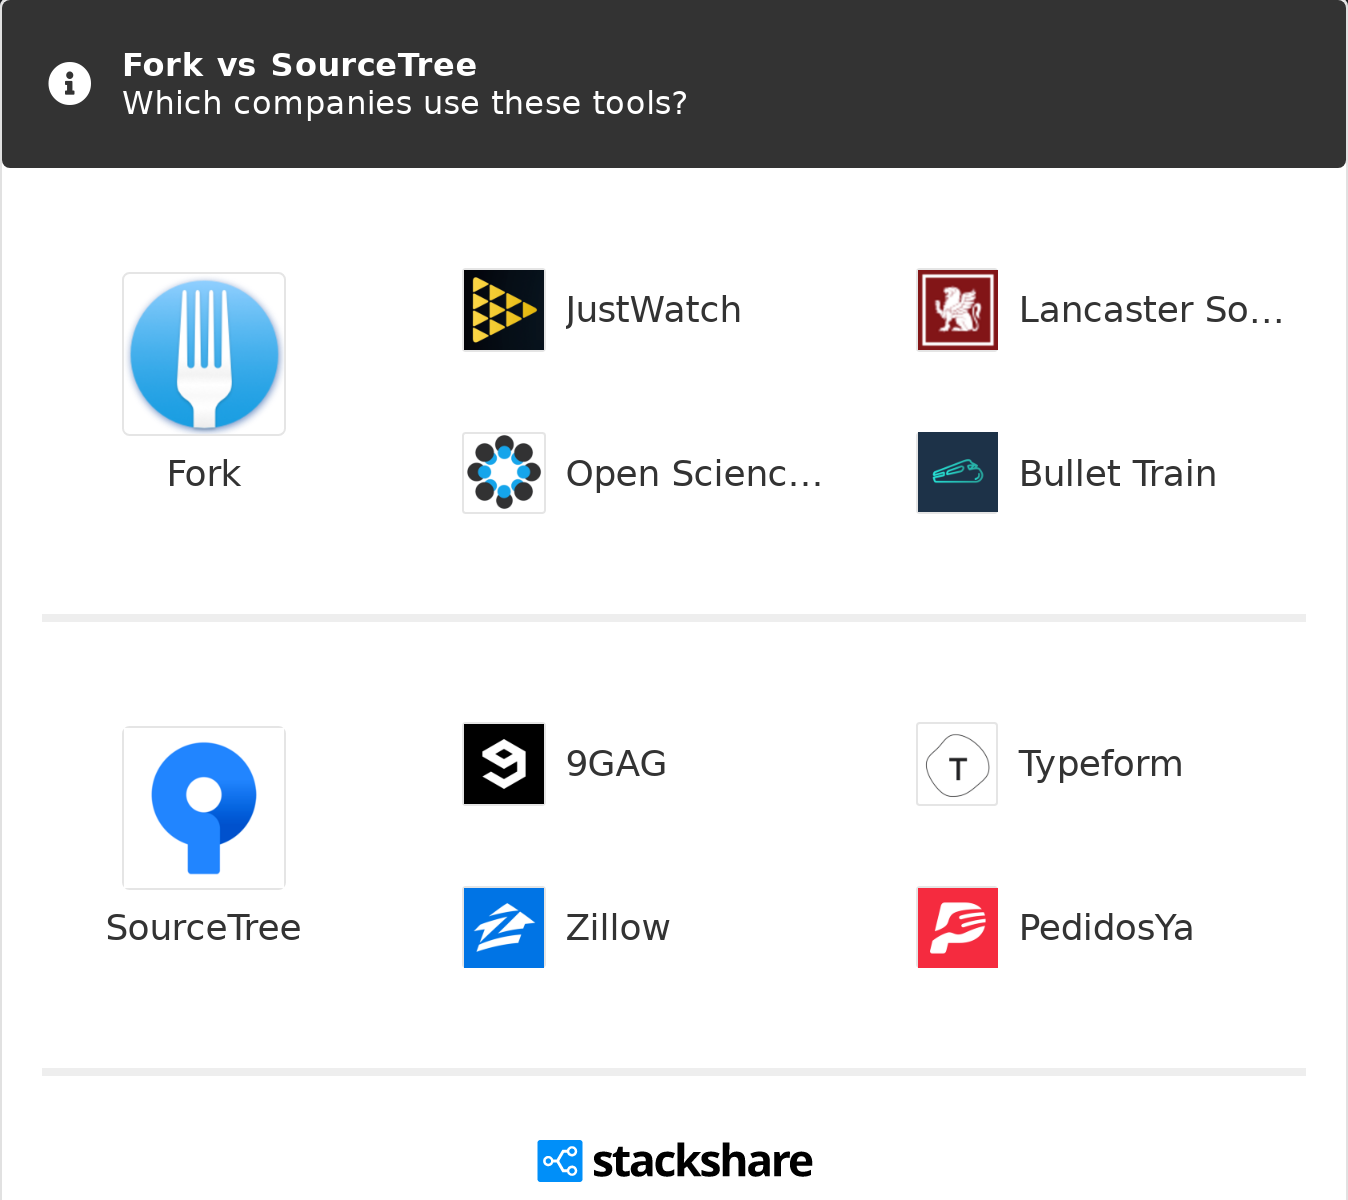 Fork vs SourceTree | What are the differences?